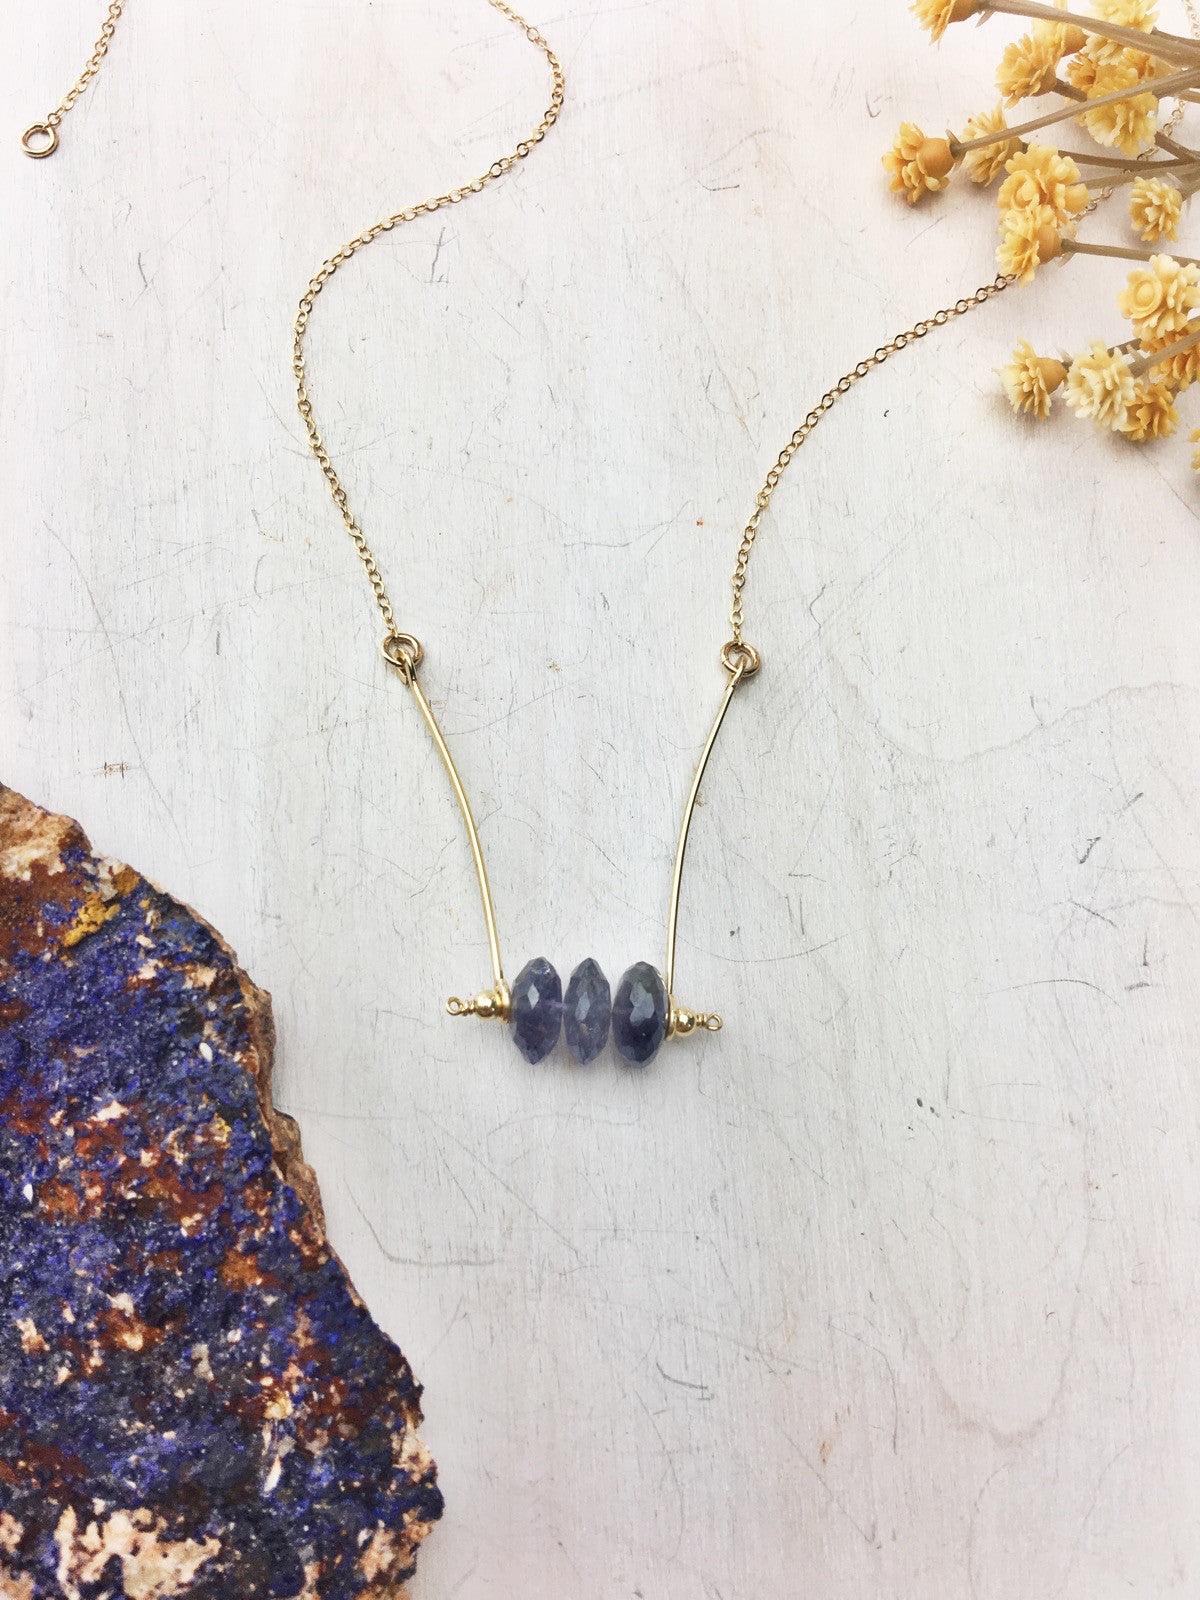 Flicka Necklace - Iolite with 14k Gold Fill Bars and Chain